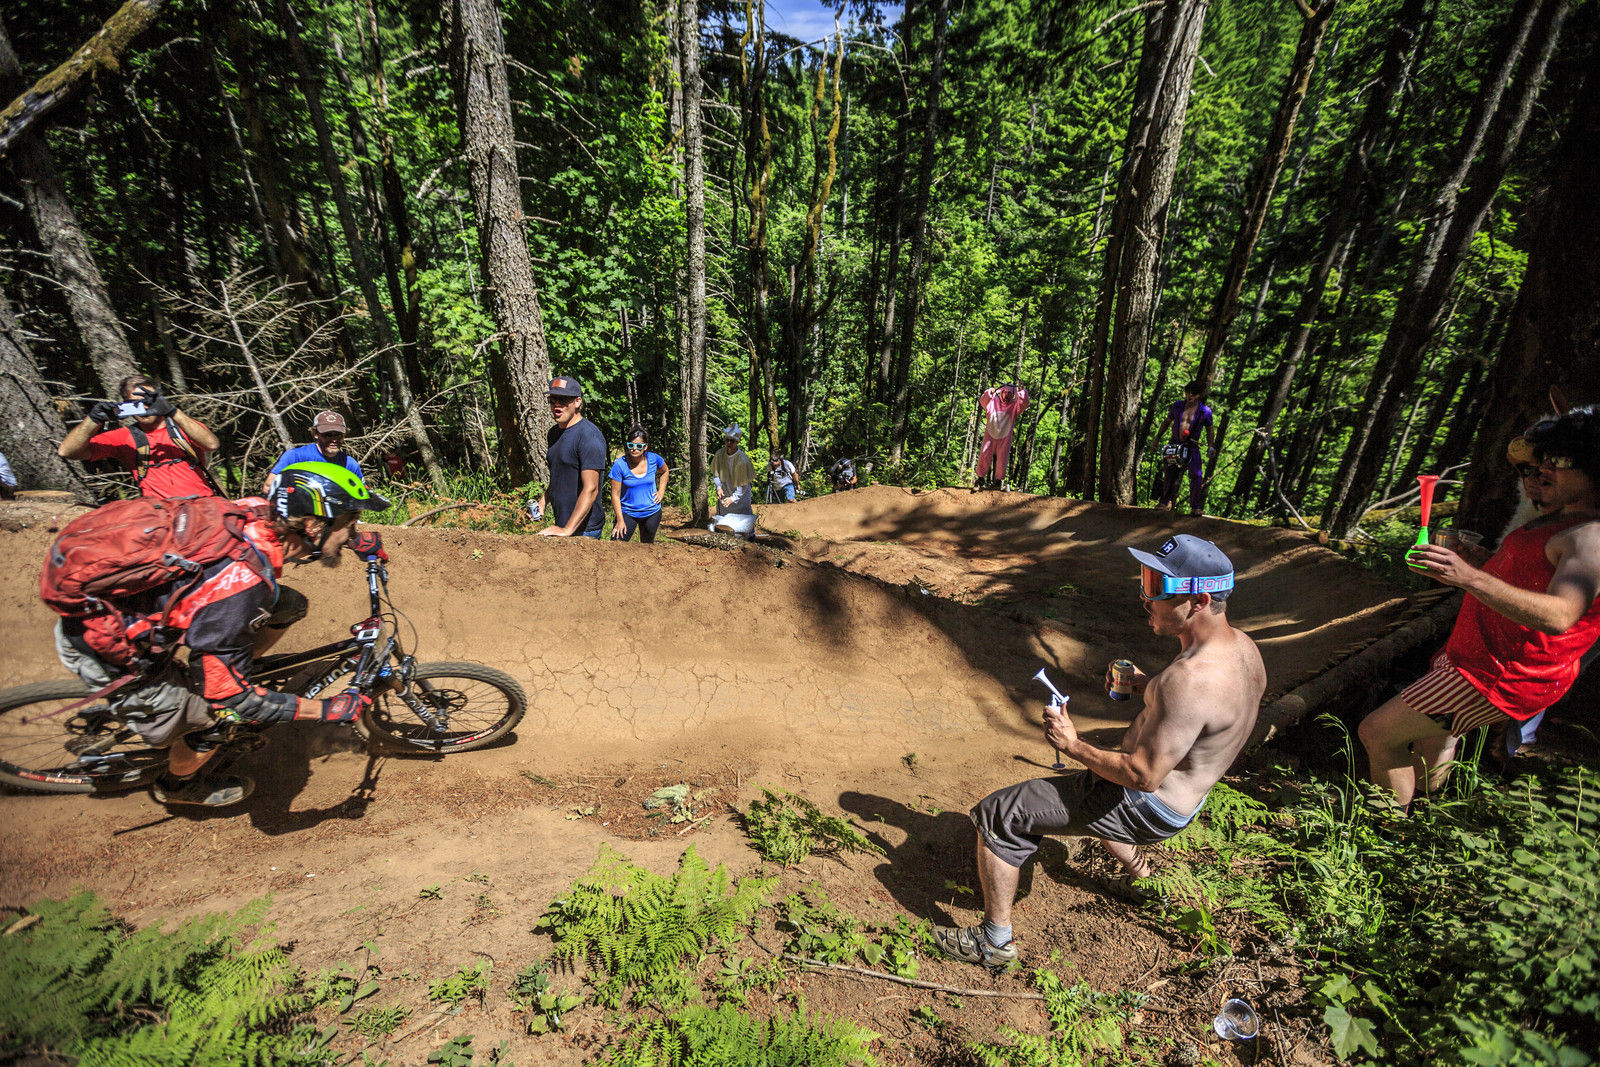 Dual Slalom or the Oregon Enduro, Hood River? - Oregon Enduro Hood River - Mountain Biking Pictures - Vital MTB